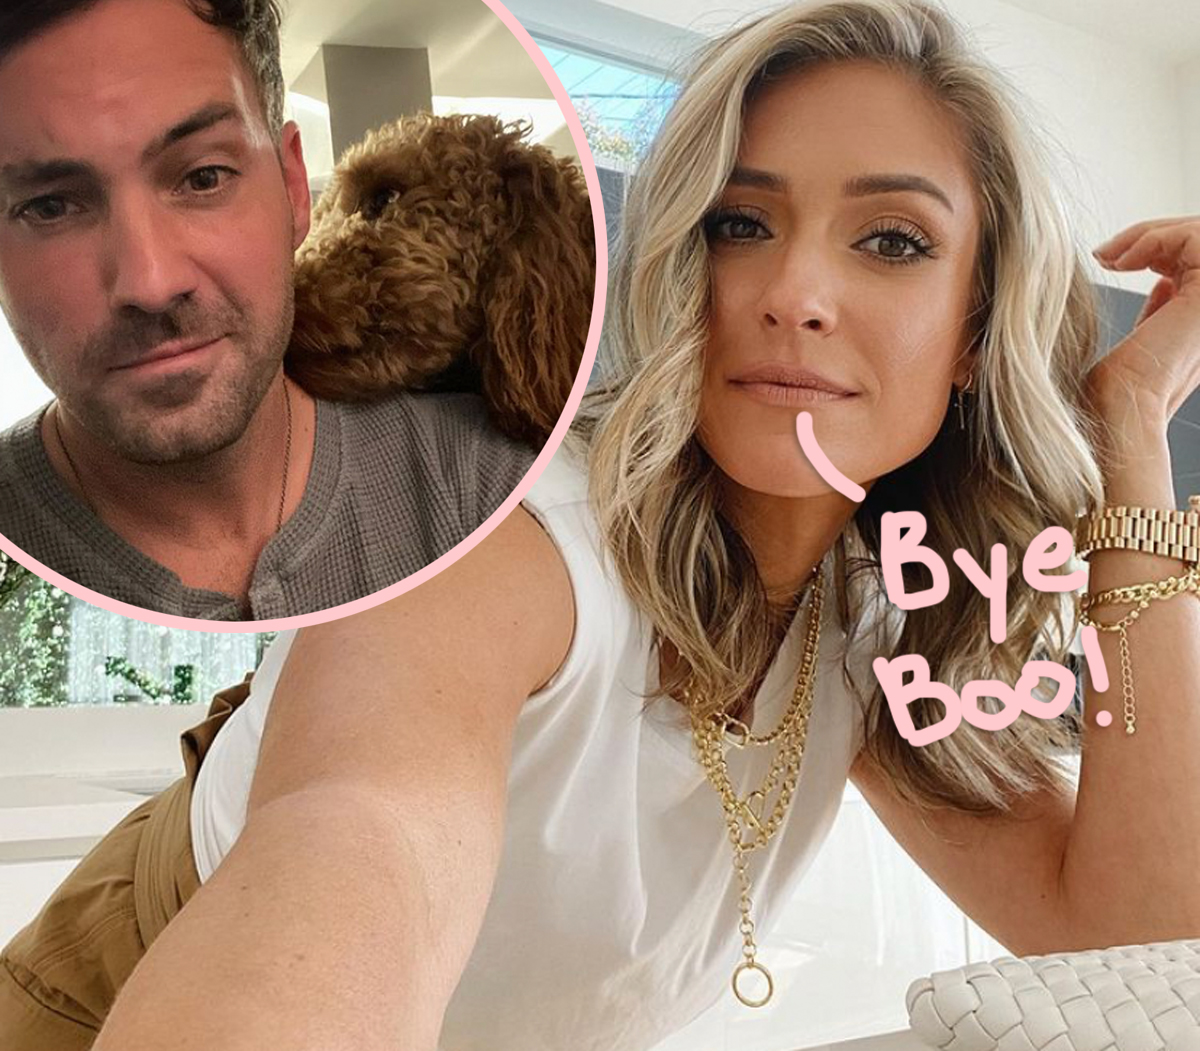 Kristin Cavallari & Jeff Dye Call It Quits After 5 Months Of Dating!